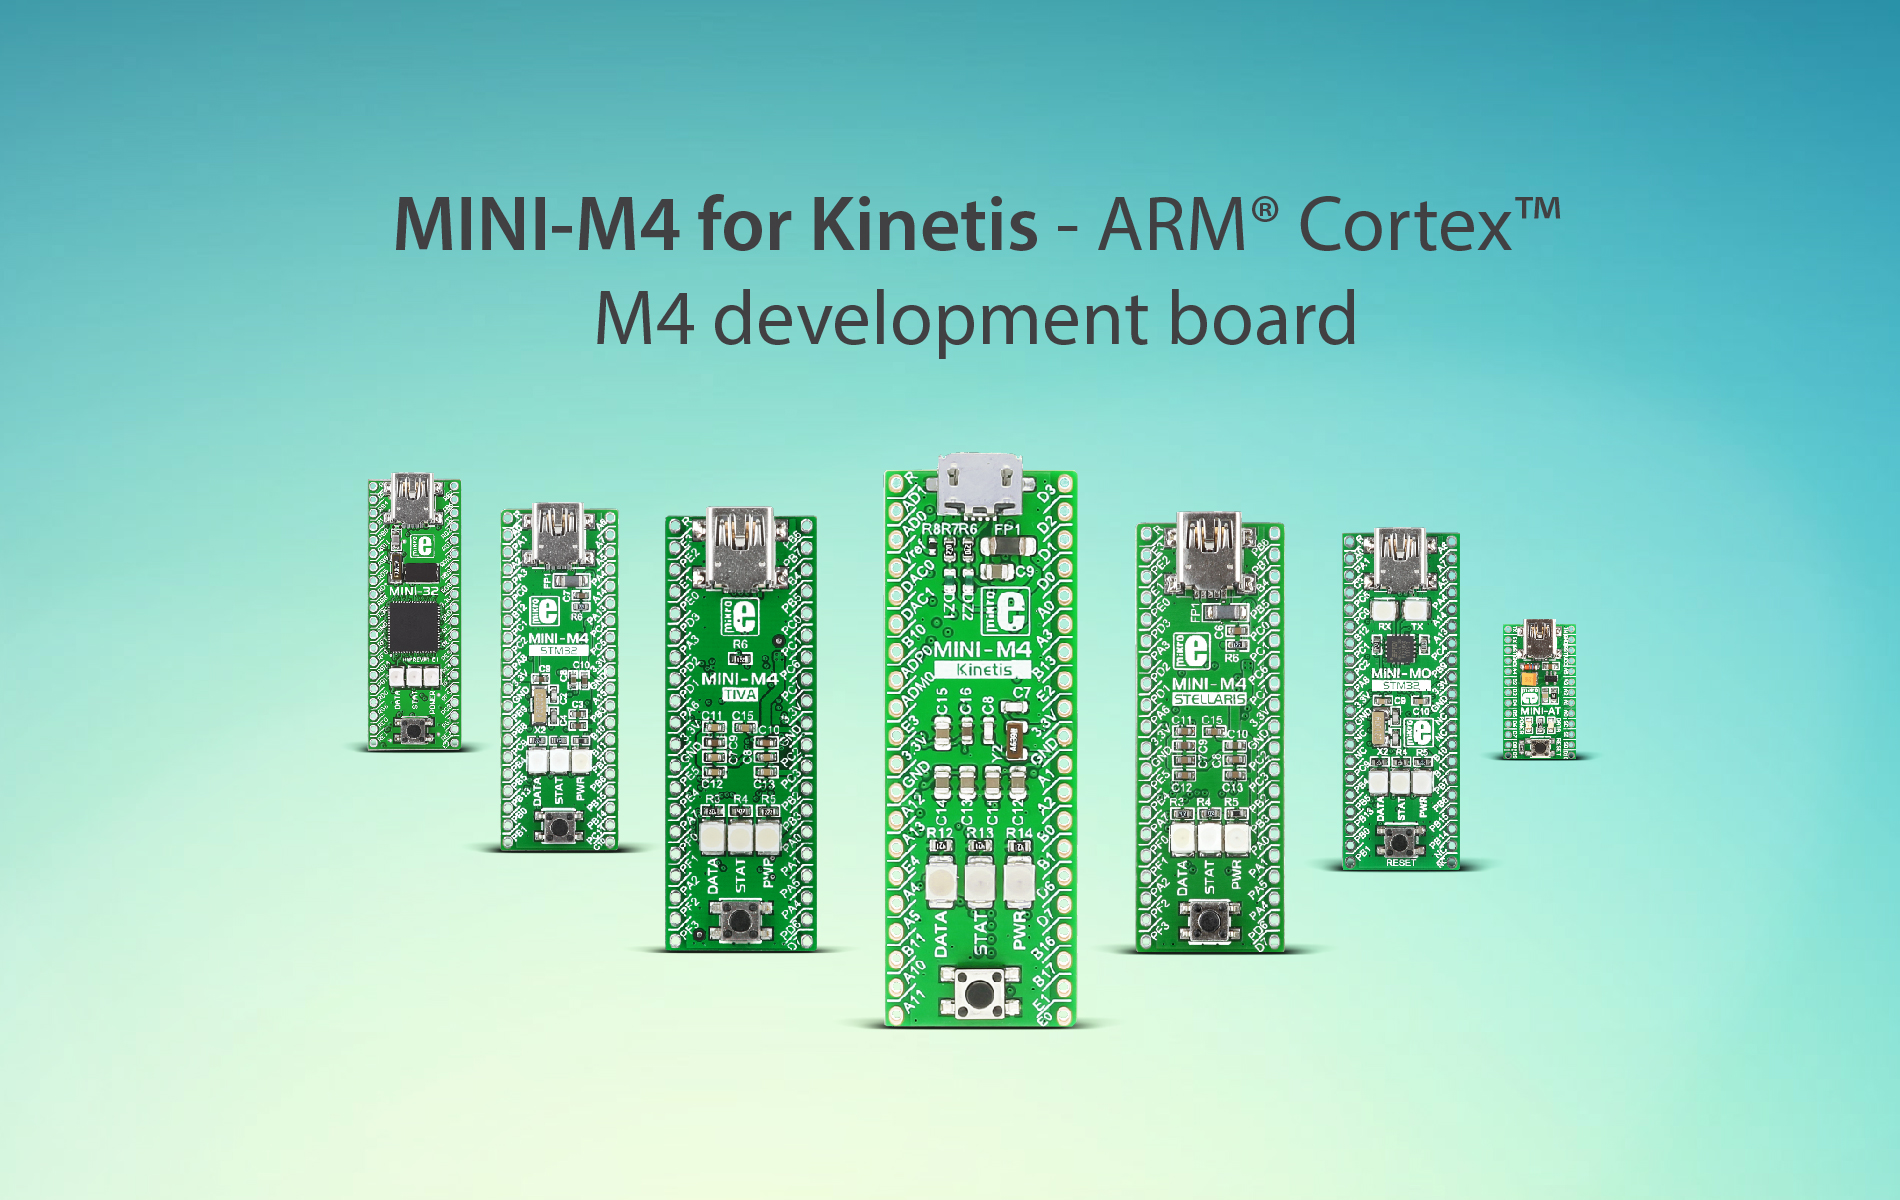 MINI-M4 for Kinetis — small but powerful development tool